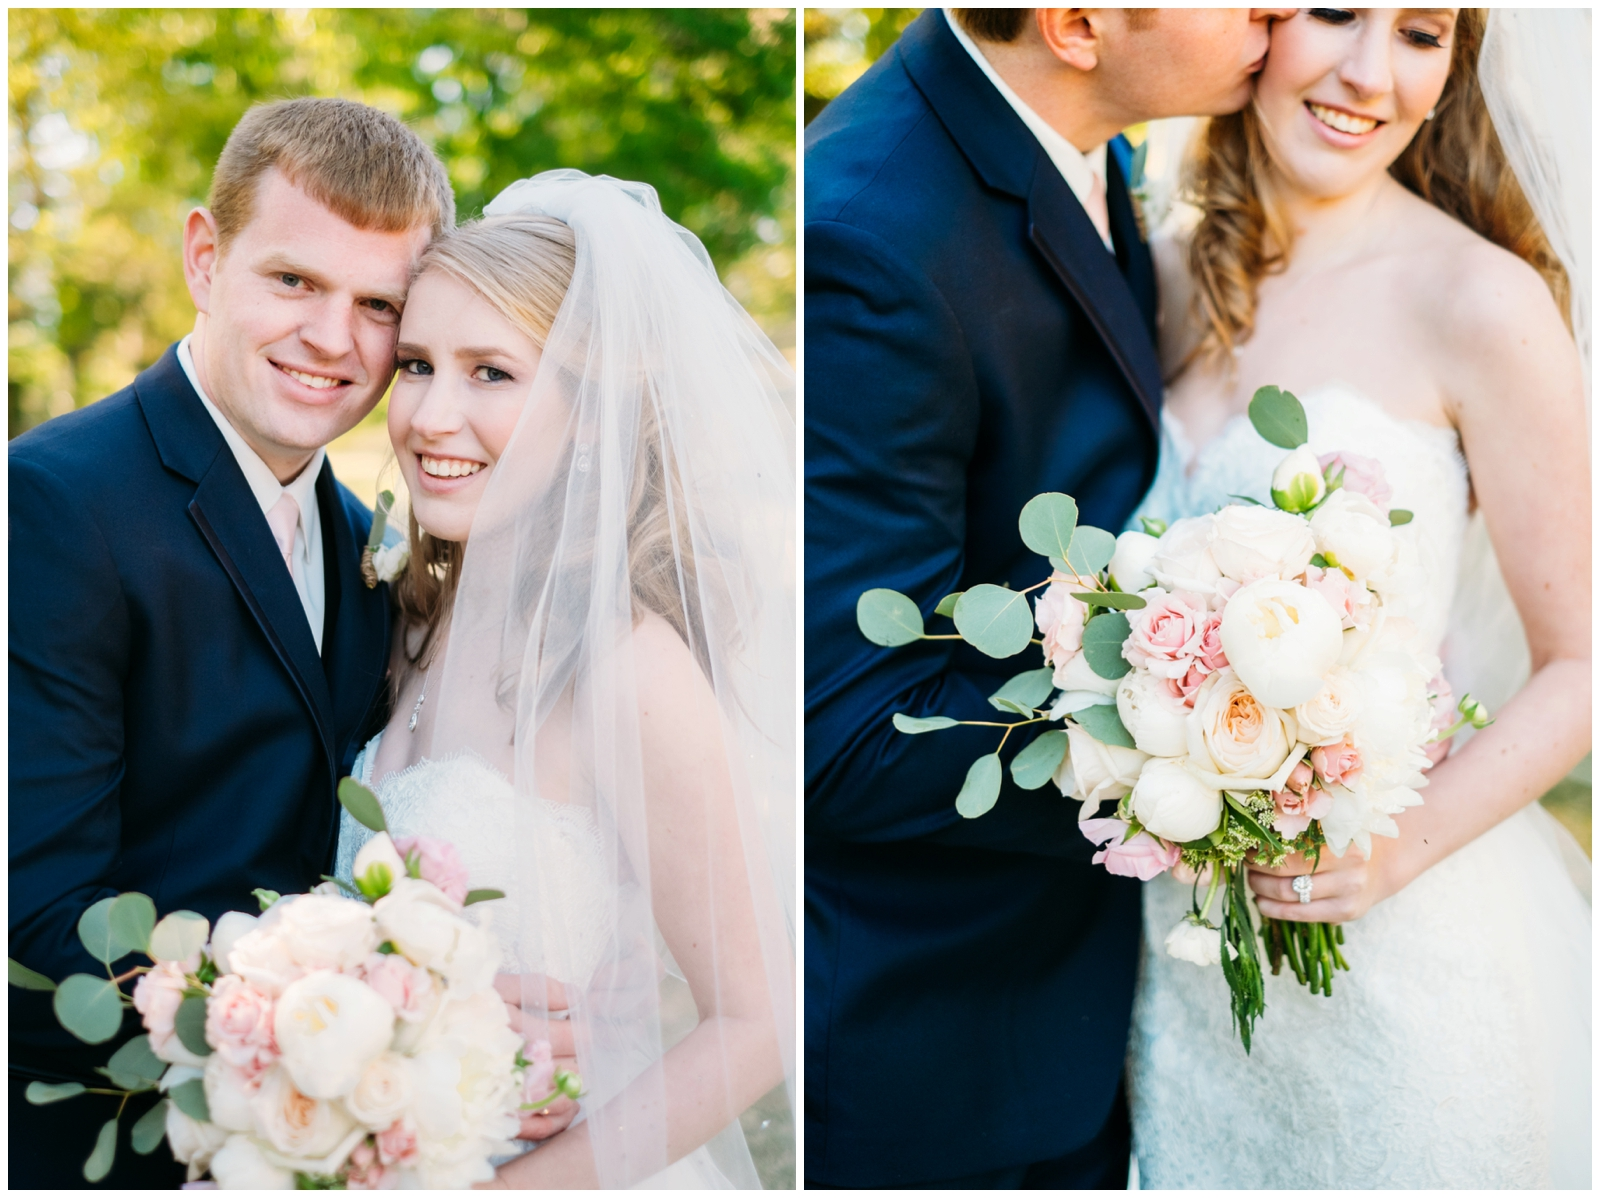 Morgan & Kyle_RoswellWedding_ArdentStory_0024